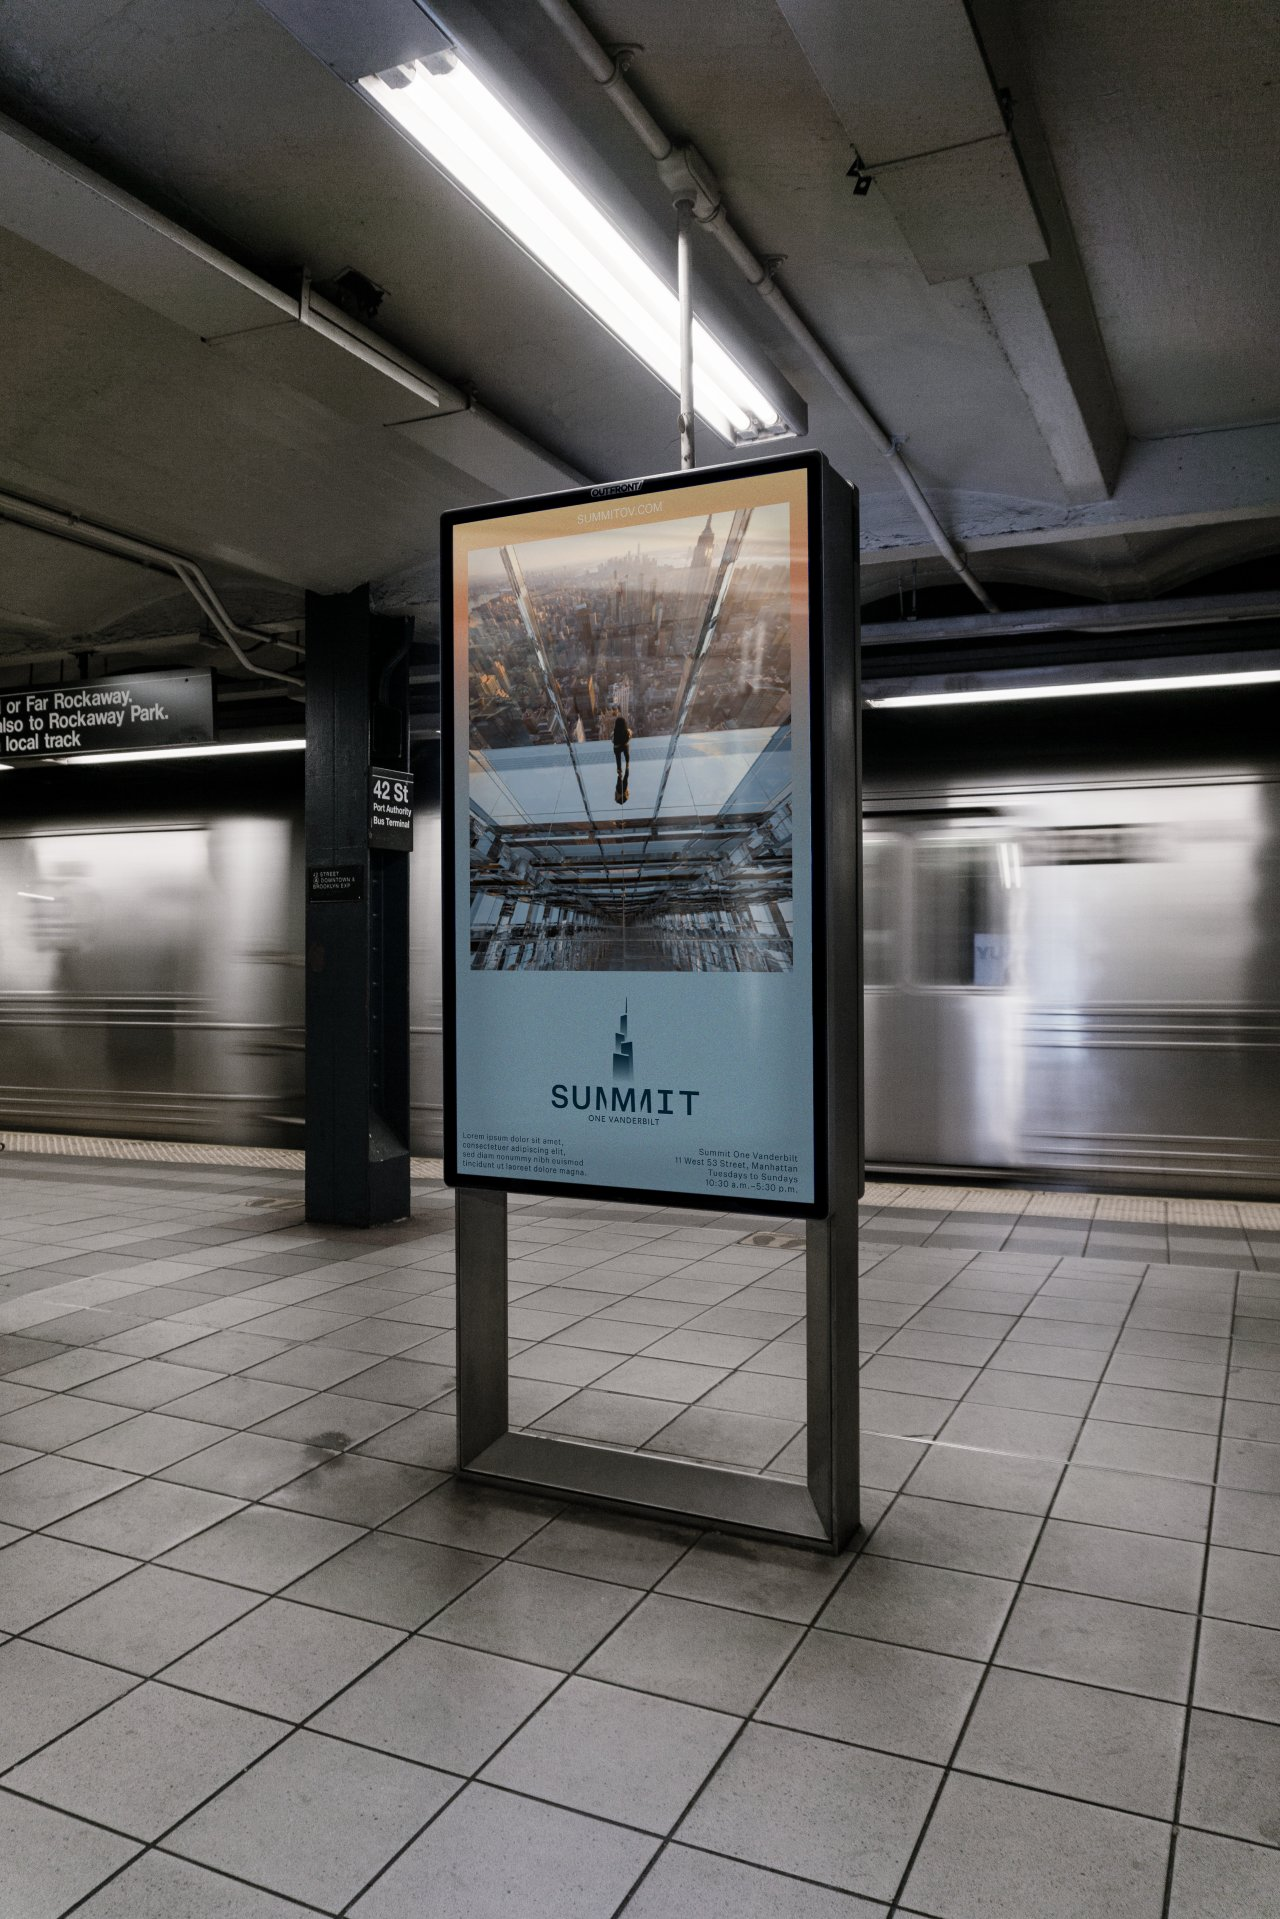 Signage for Summit at One Vanderbilt in New York (Point of Reference studio)